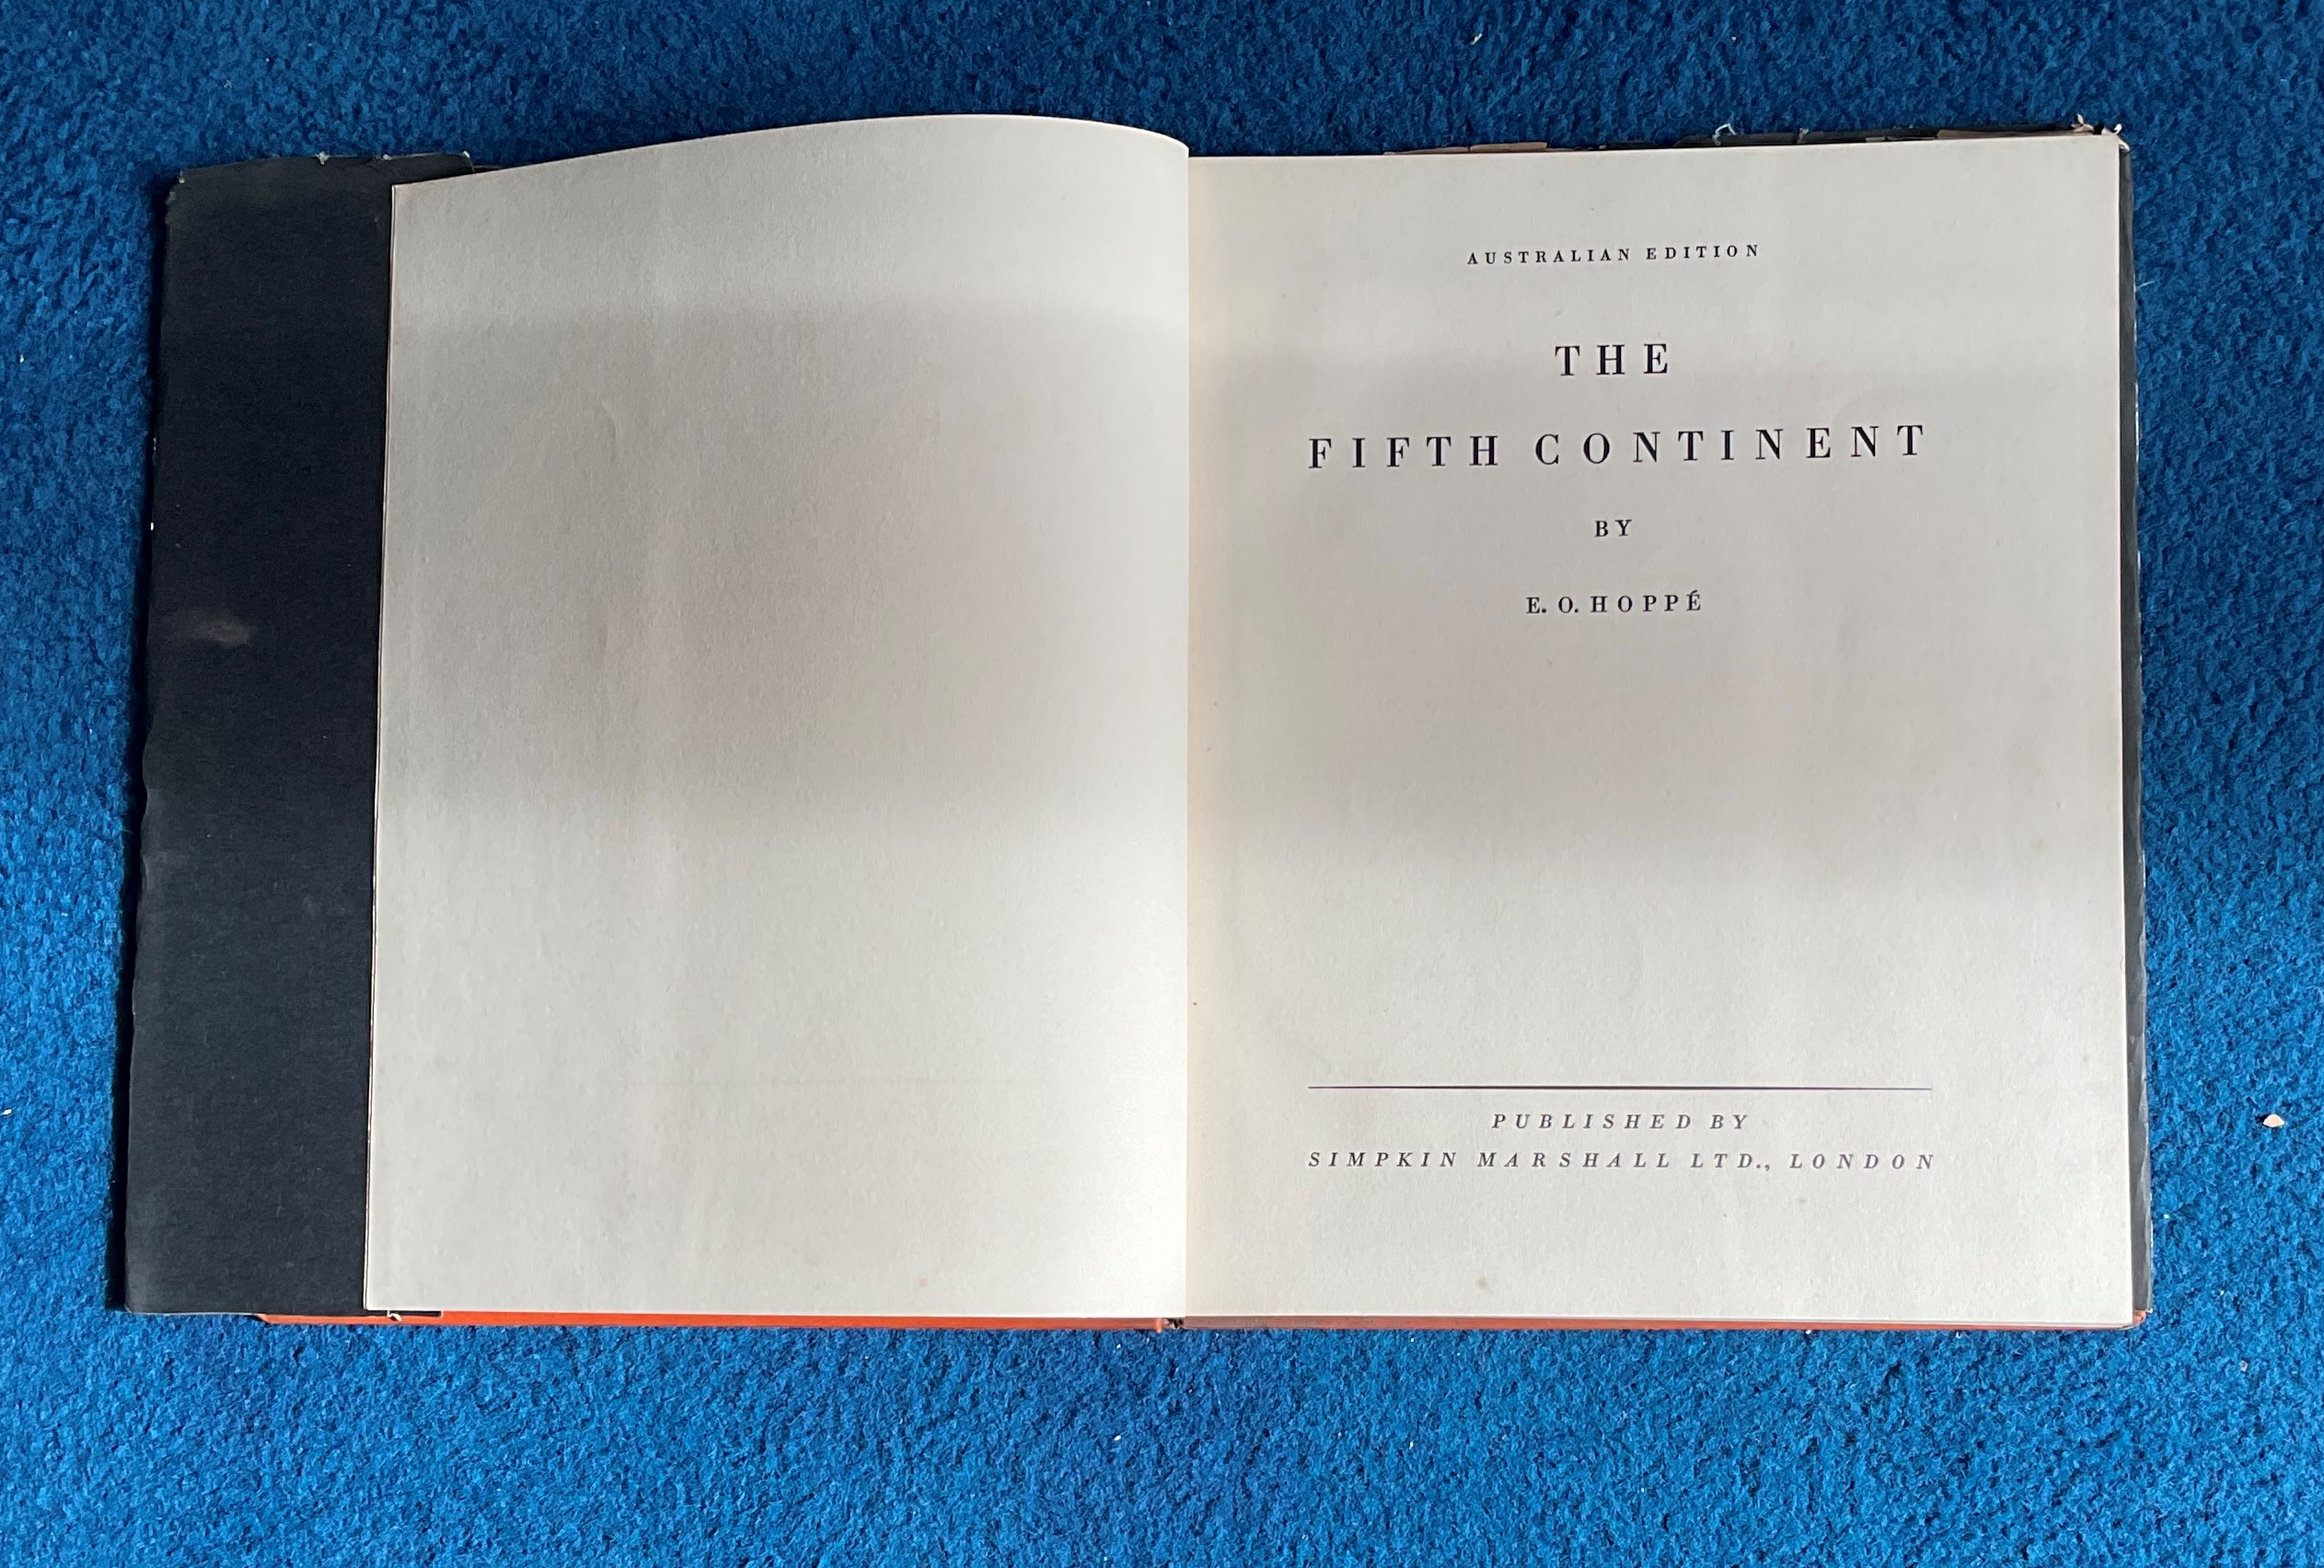 Hardback Book The Fifth Continent (Australian Edition) by E. O. Hoppe 1931 with 32 pages of text and - Image 2 of 2